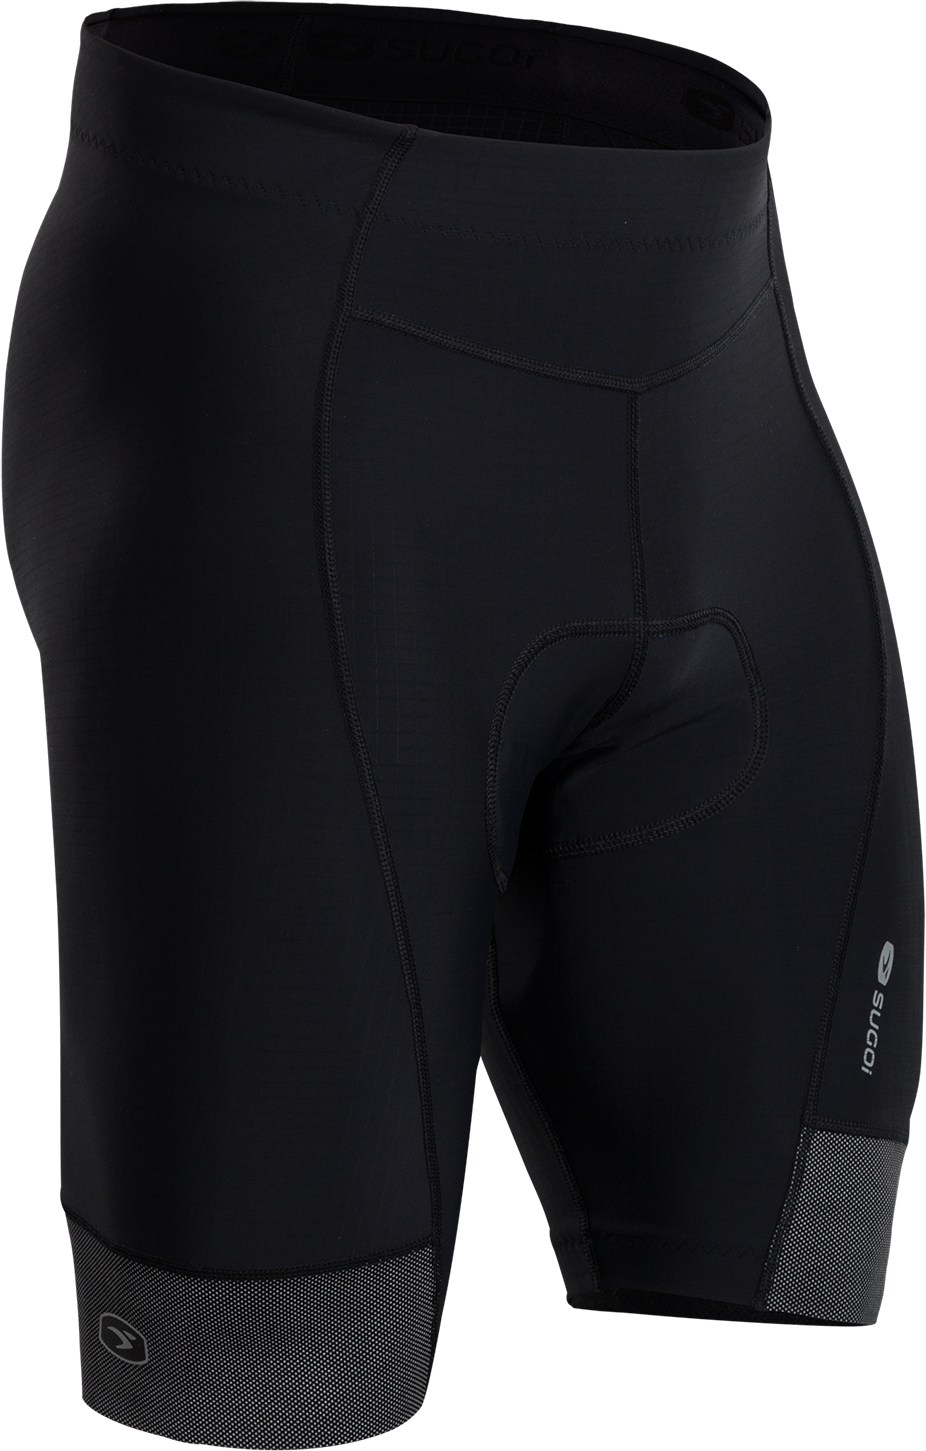 Sugoi Evolution Zap Bike Shorts - Men's